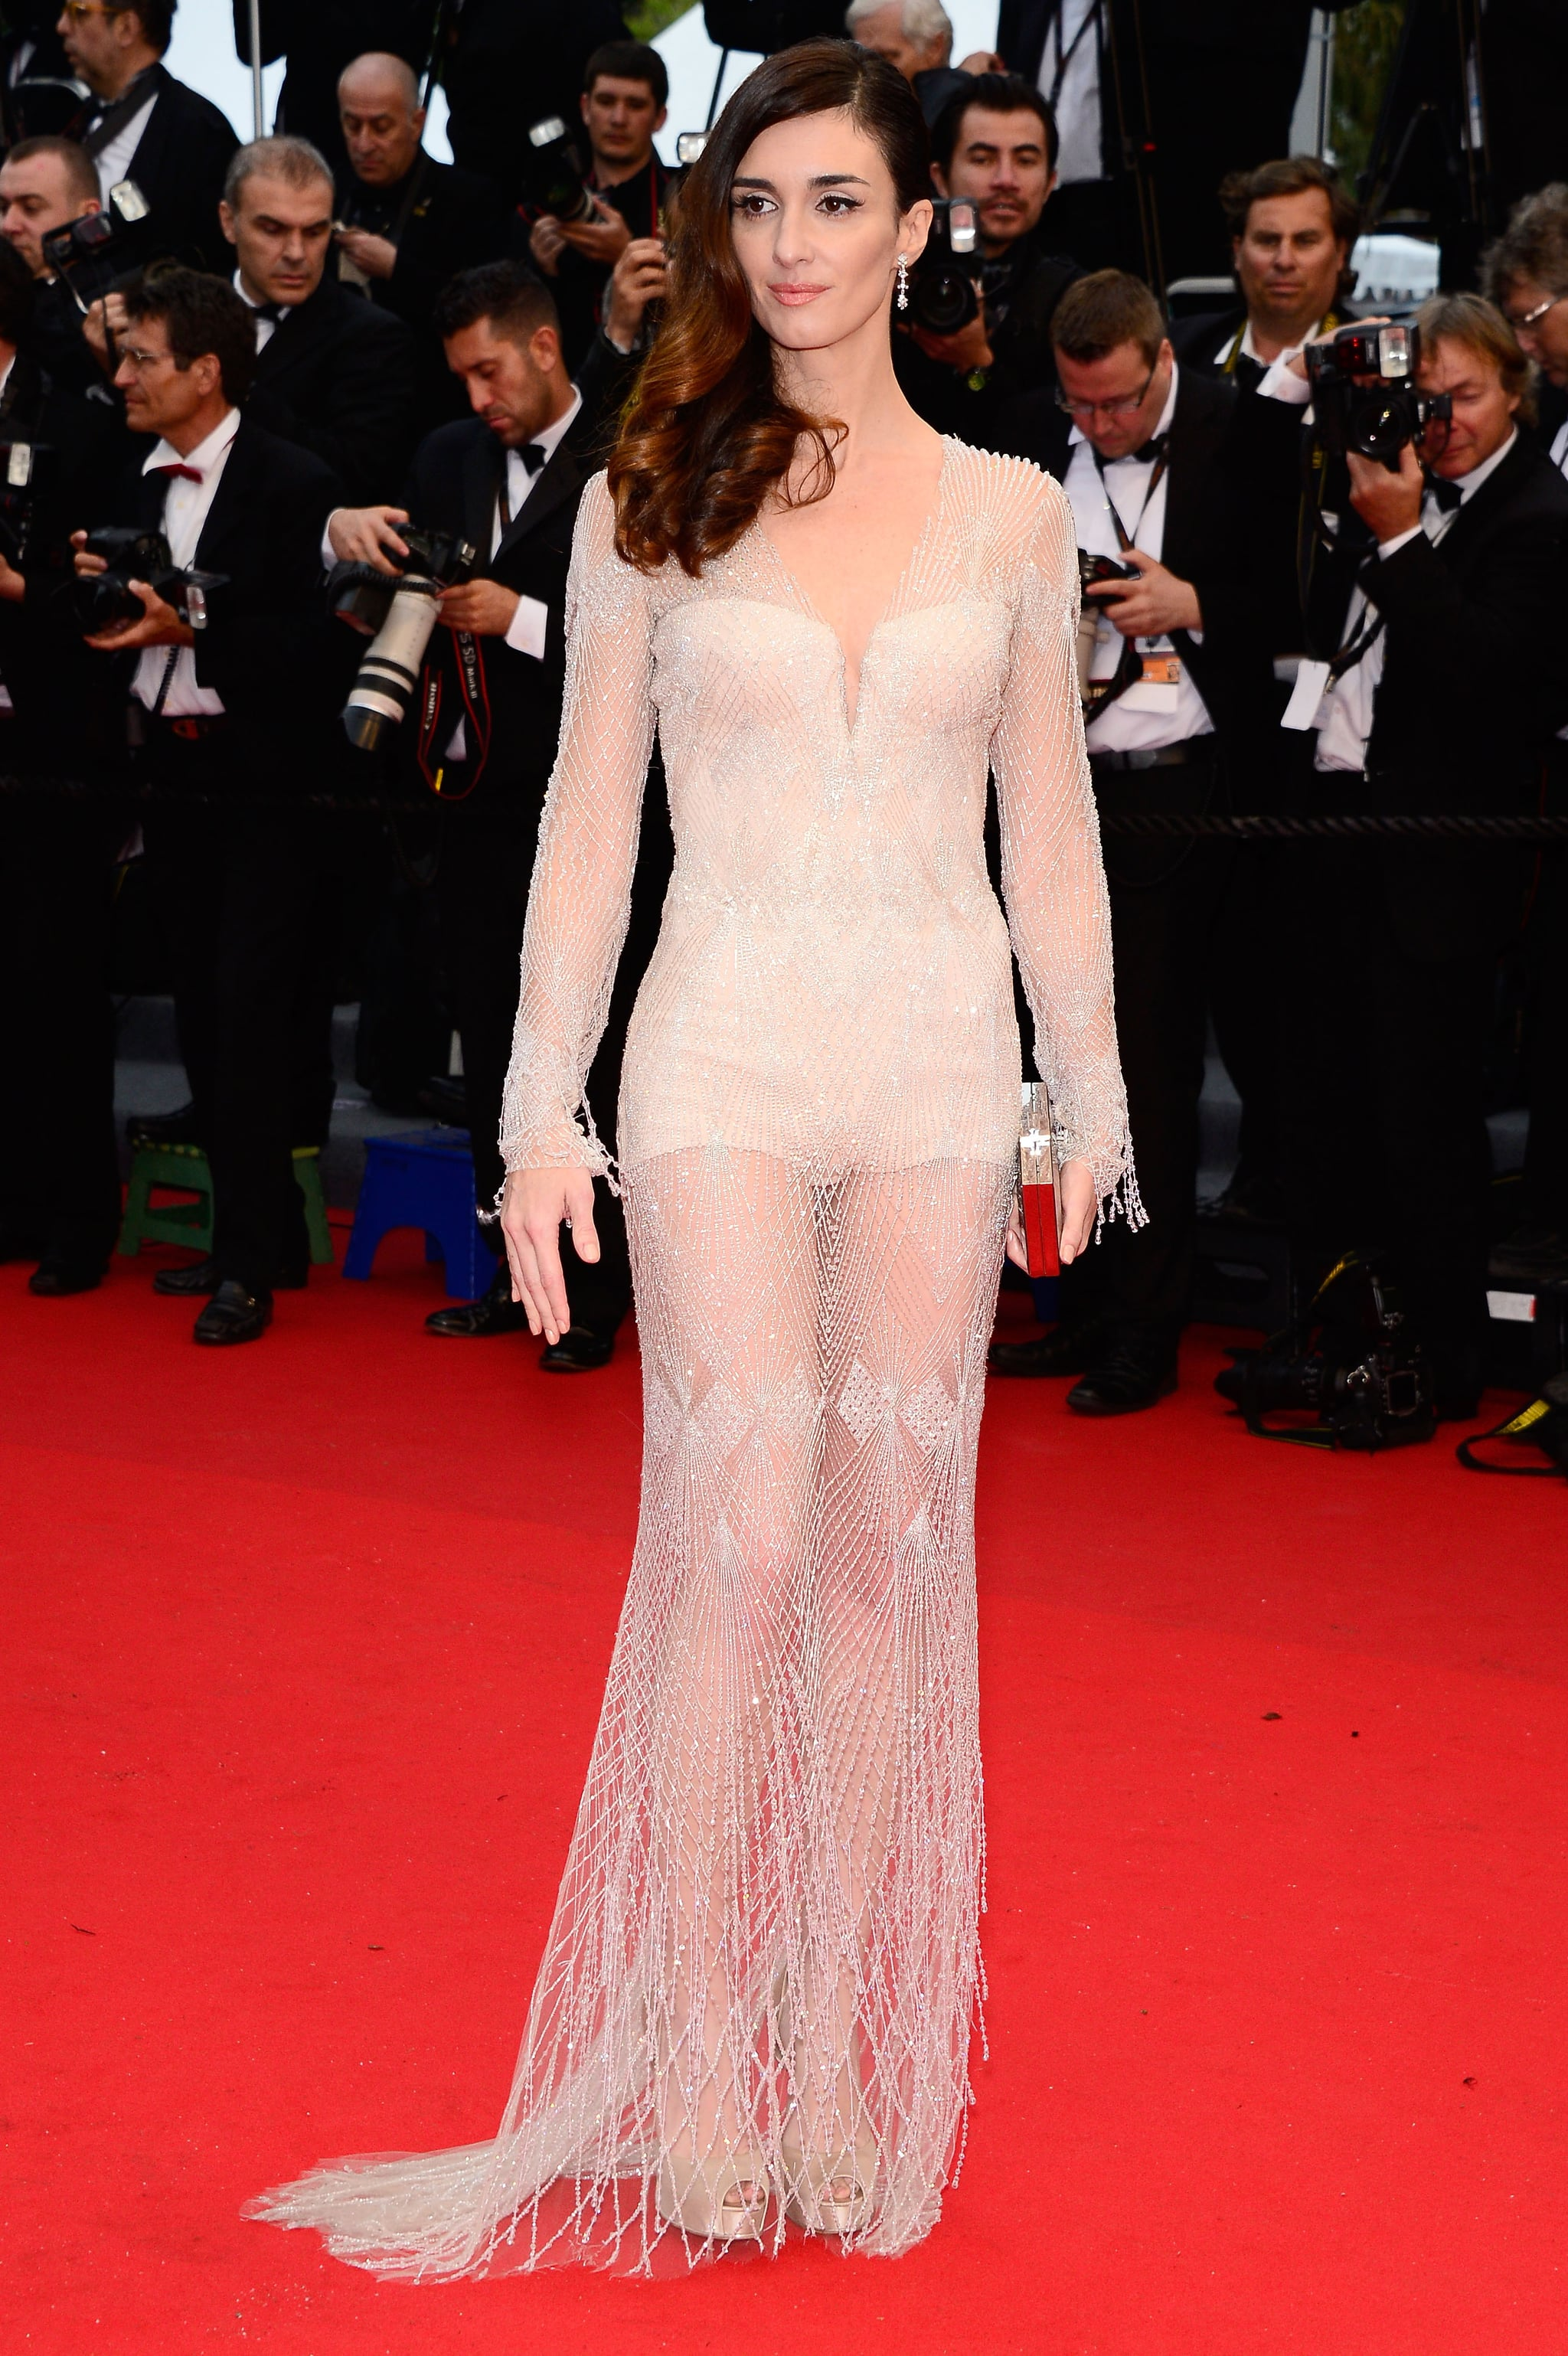 Paz Vega wore a Roberto Cavalli frock to the Cannes Film Festival.